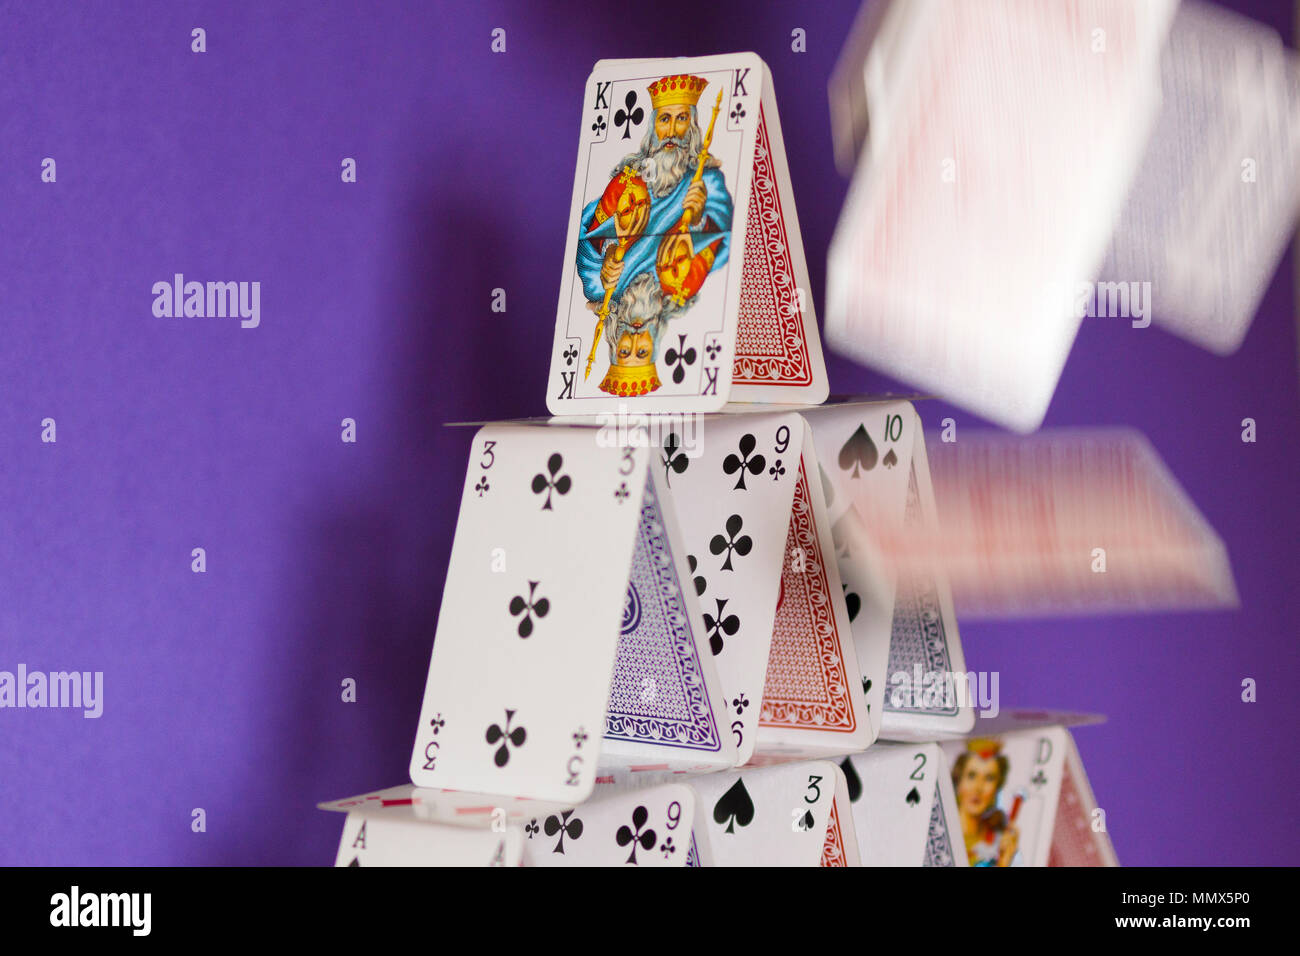 A house of cards about to collapse - a metaphor for a complicated organisation or plan that can easily go wrong Stock Photo